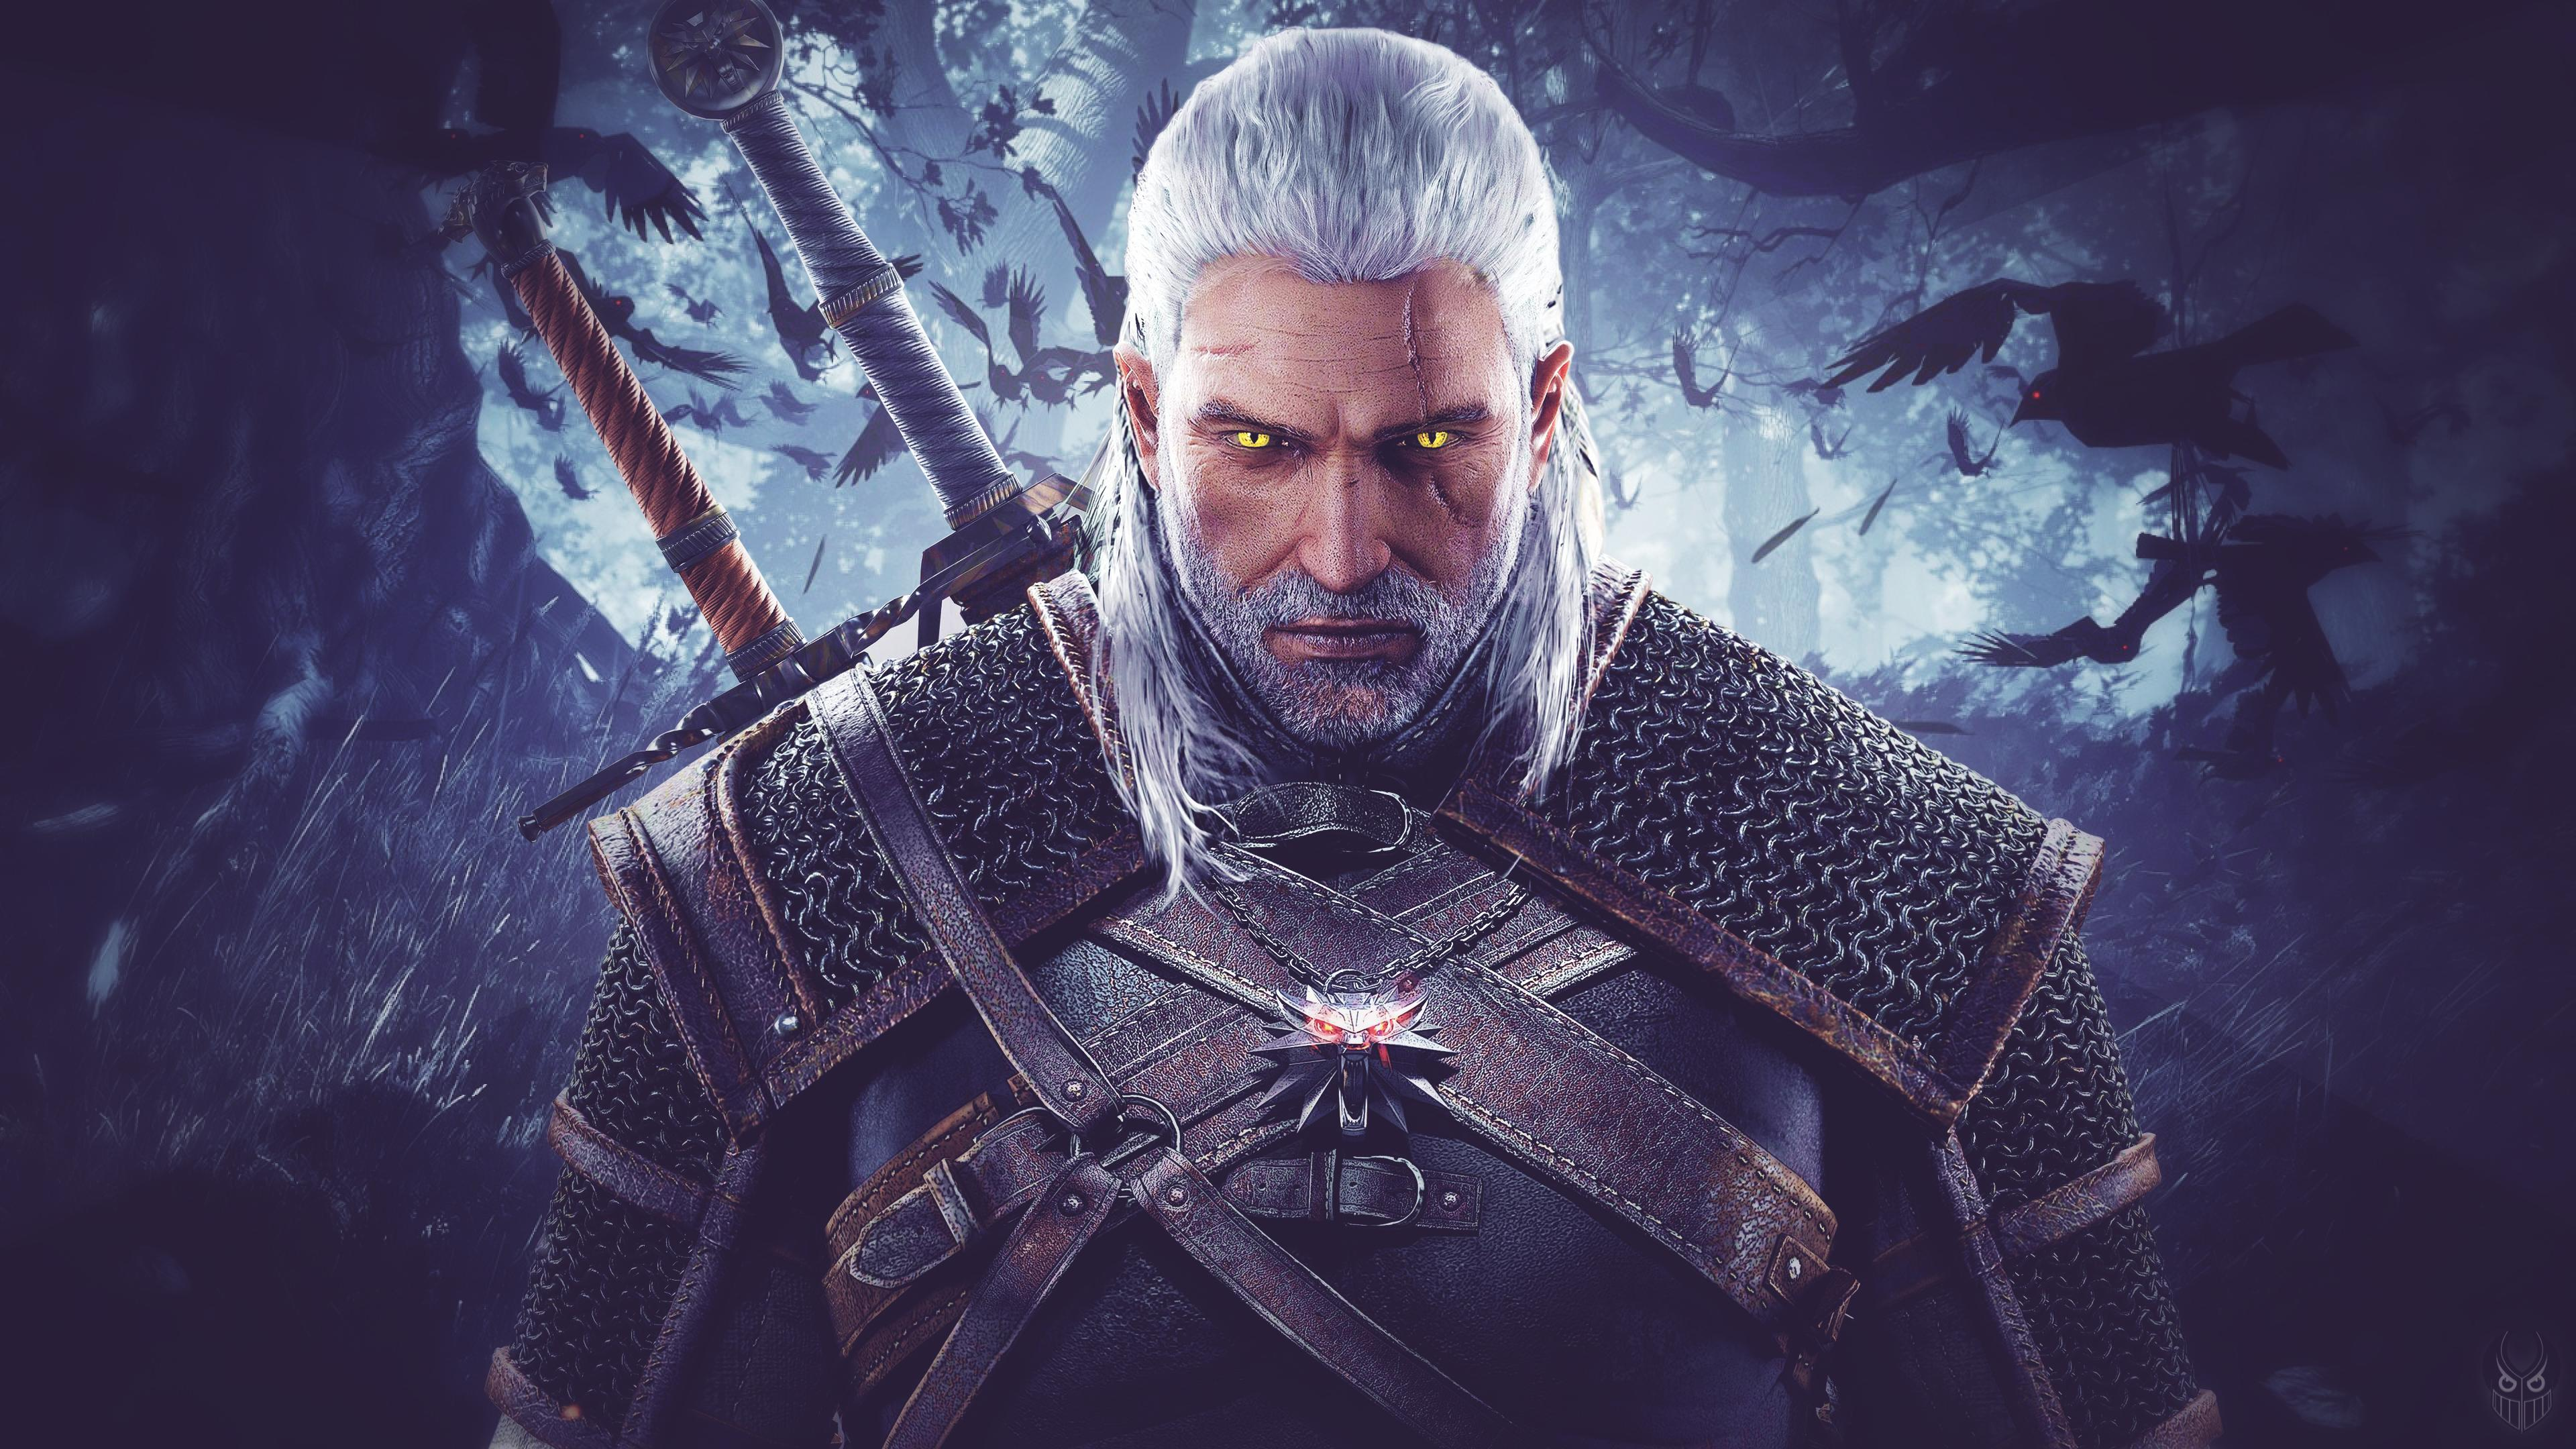 The Witcher 4K Wallpapers - Wallpaper Cave